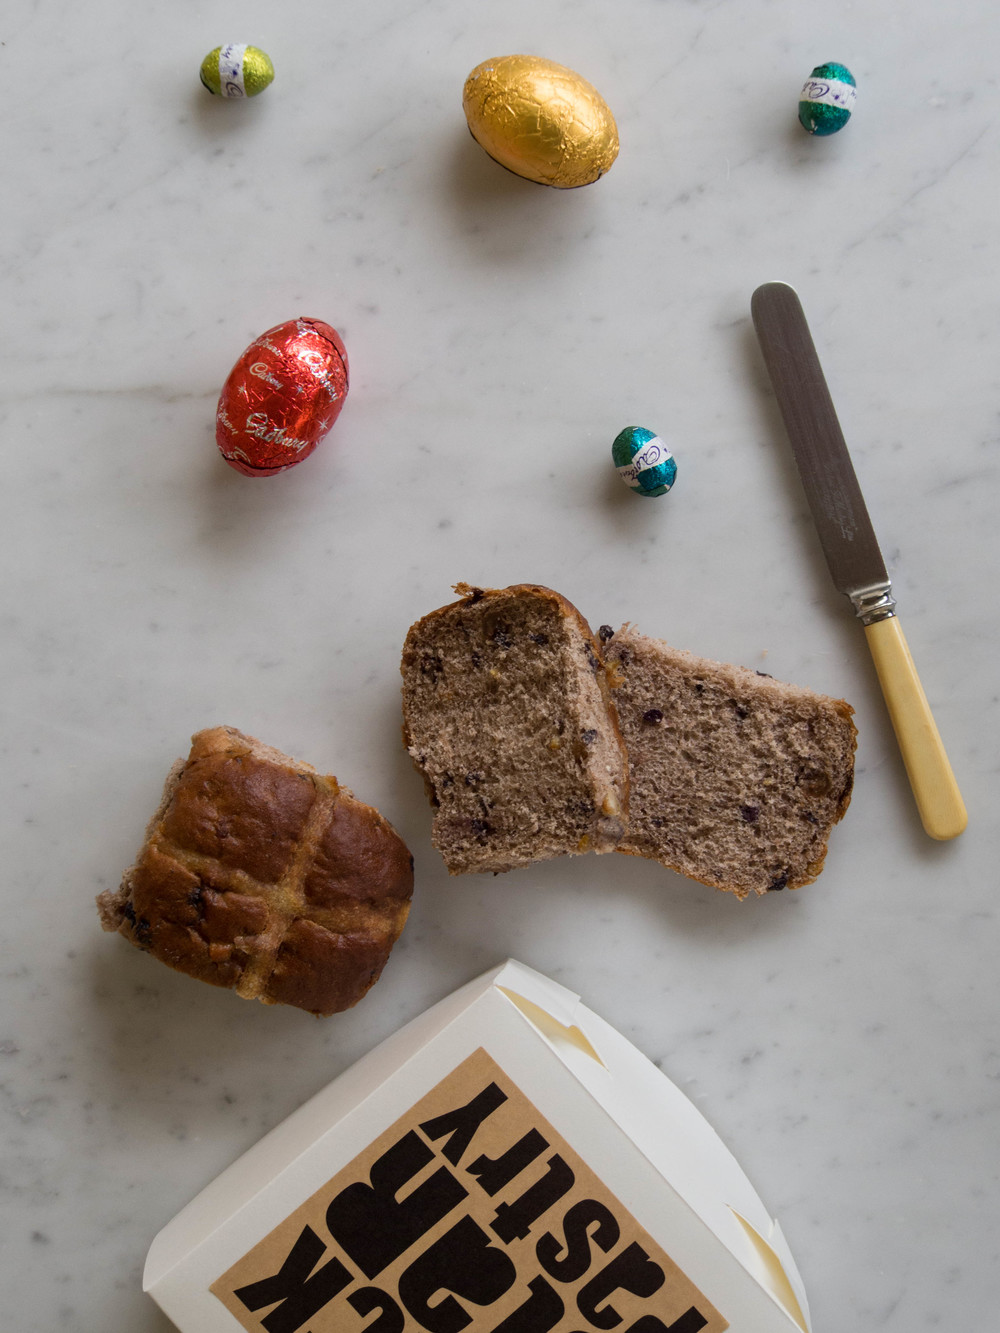 Some Easter eggs and the Hot Cross Buns from  Black Star Pastry .